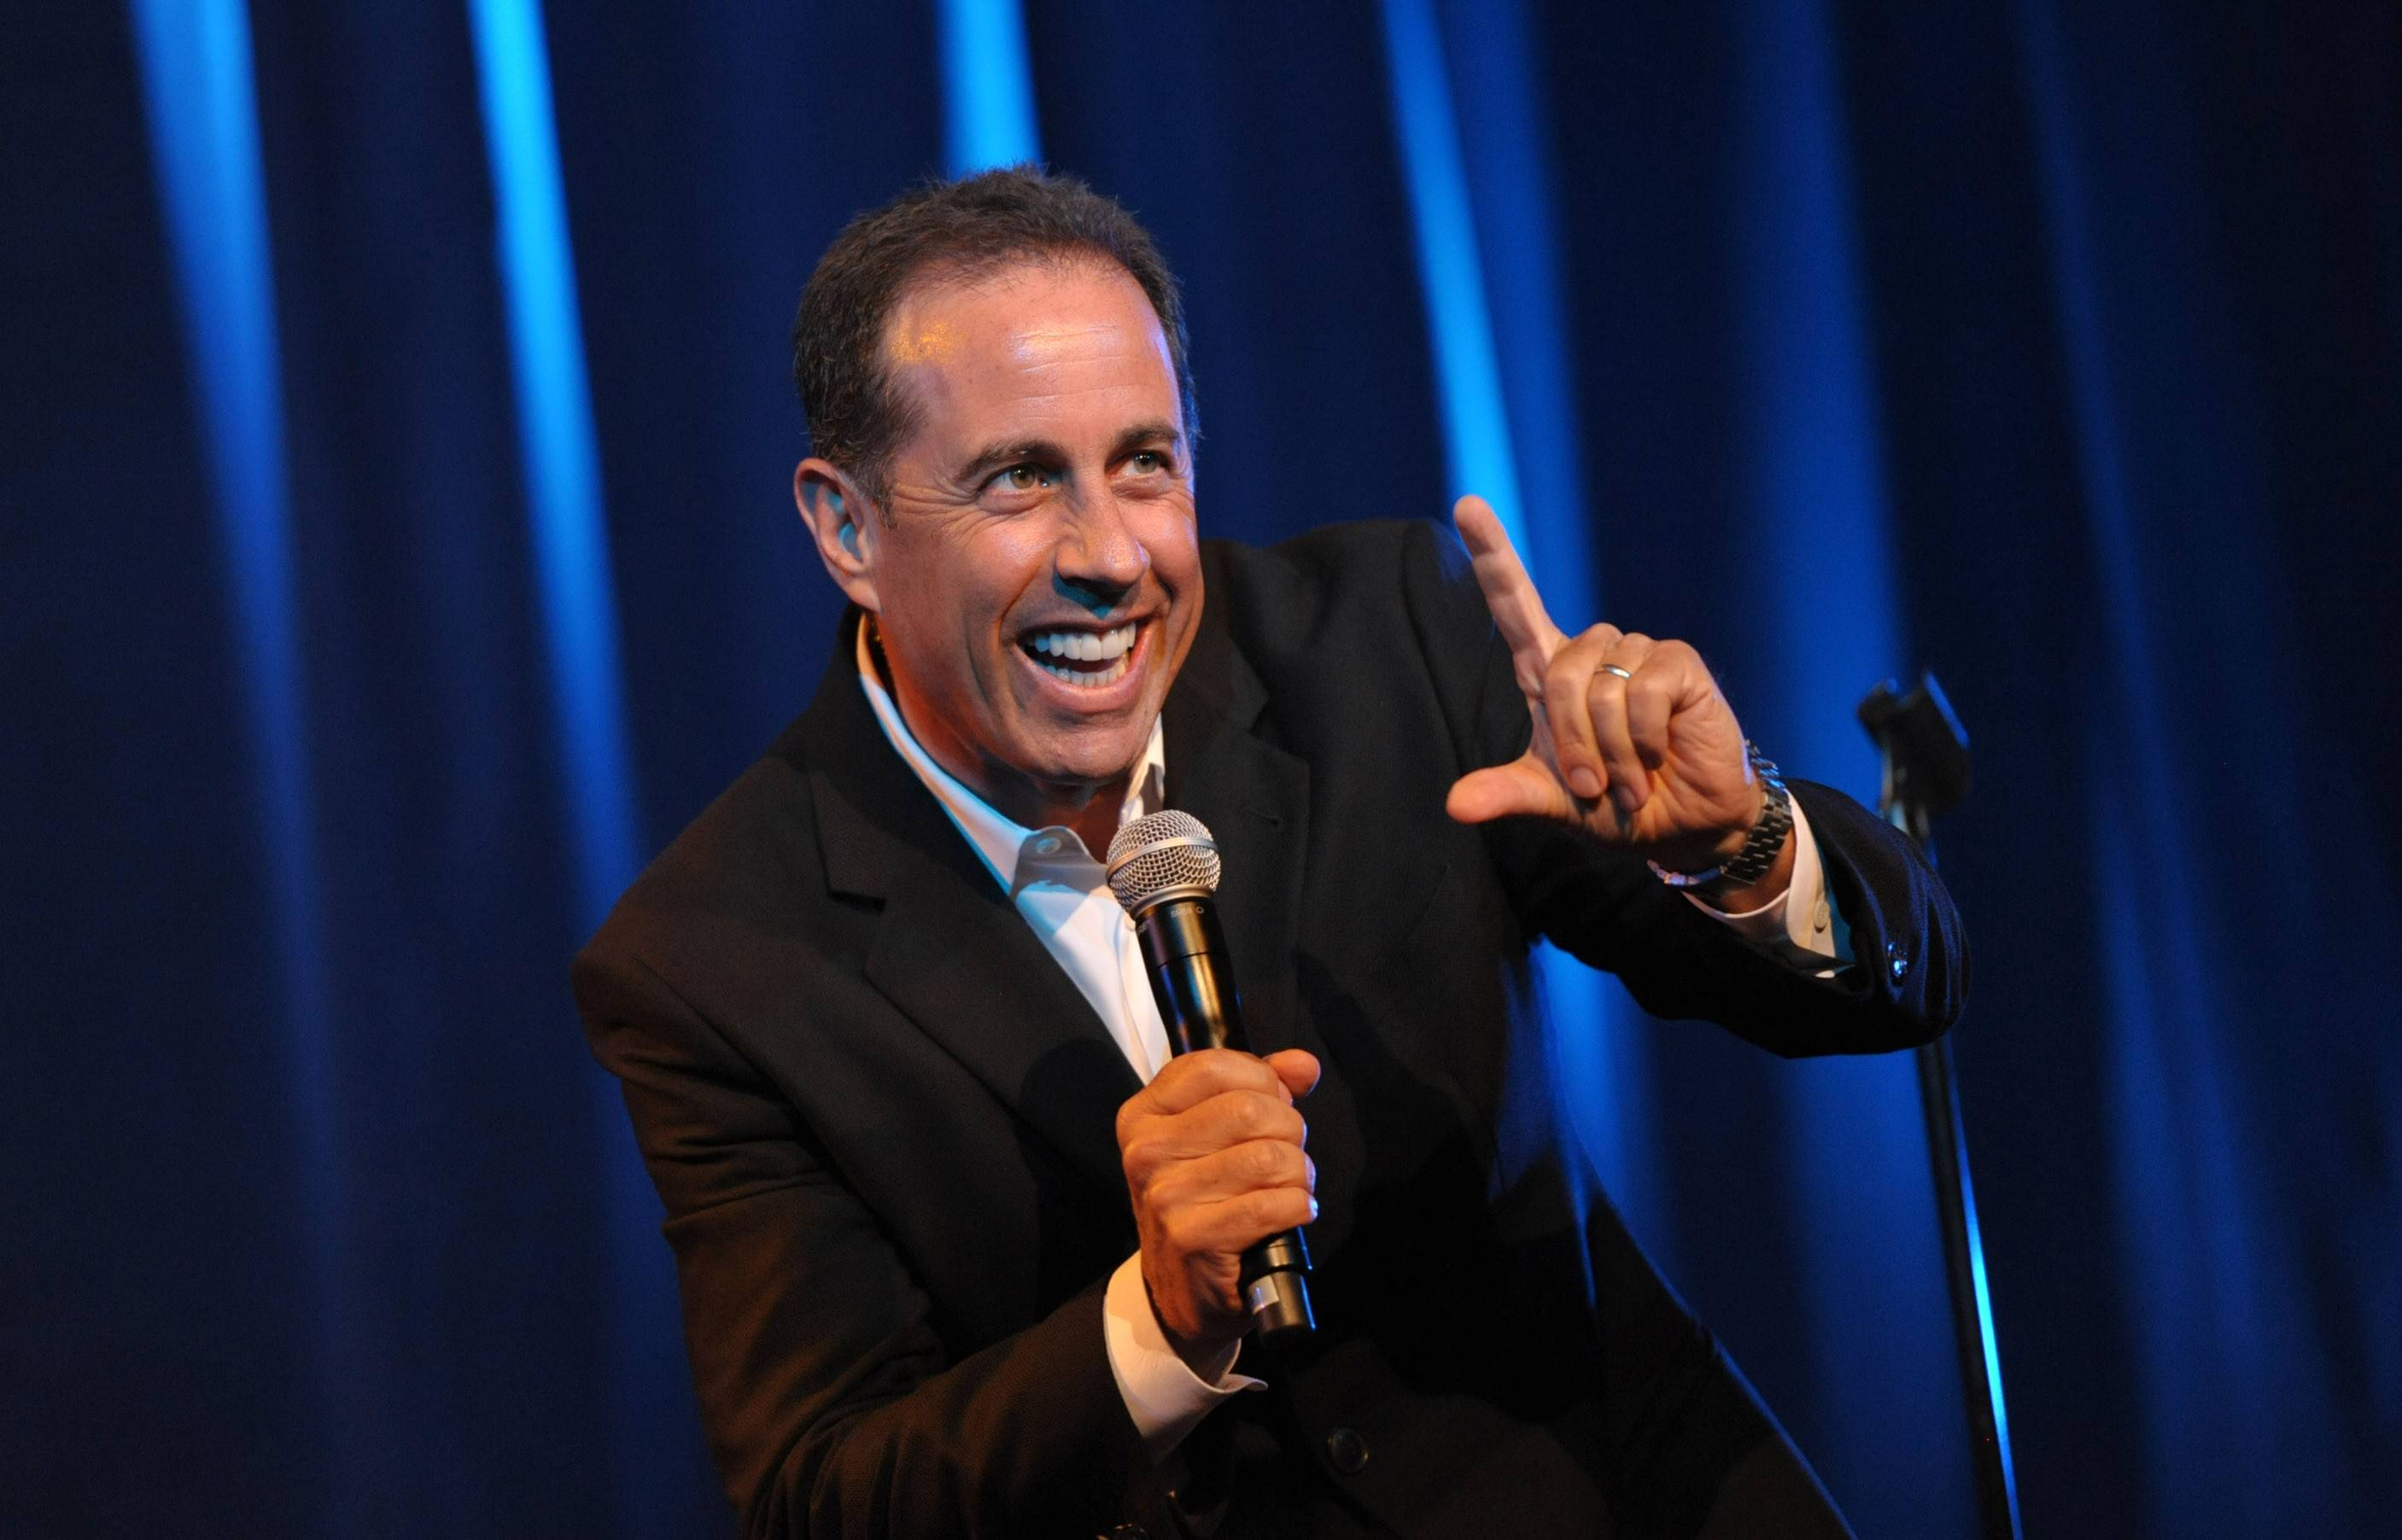 Comedian Jerry Seinfeld will headline on Friday, June 6, at the Genesee Theatre in Waukegan.